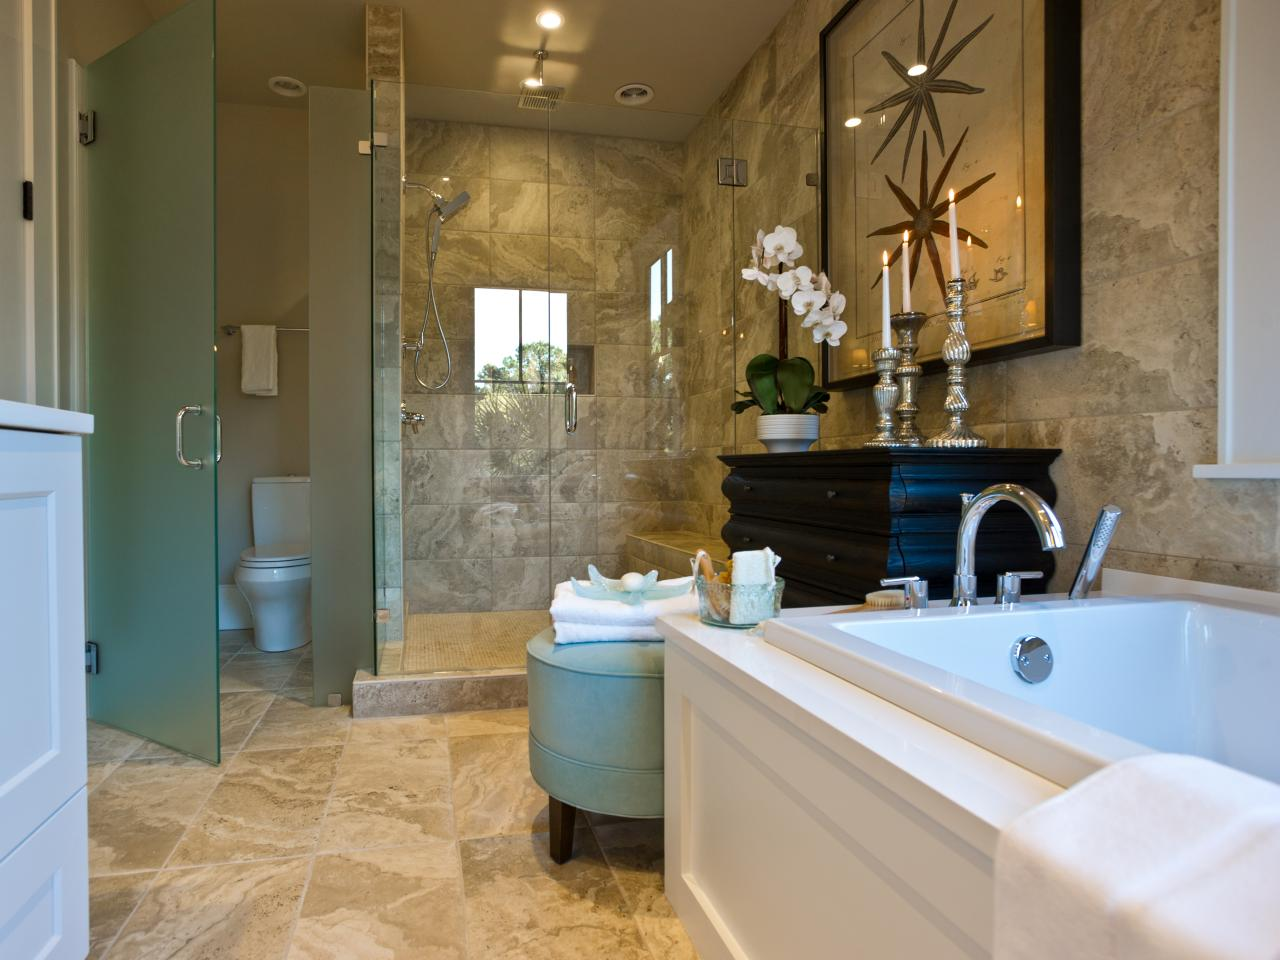 Hgtv dream home 2013 master bathroom pictures and video Hgtv bathroom remodel pictures